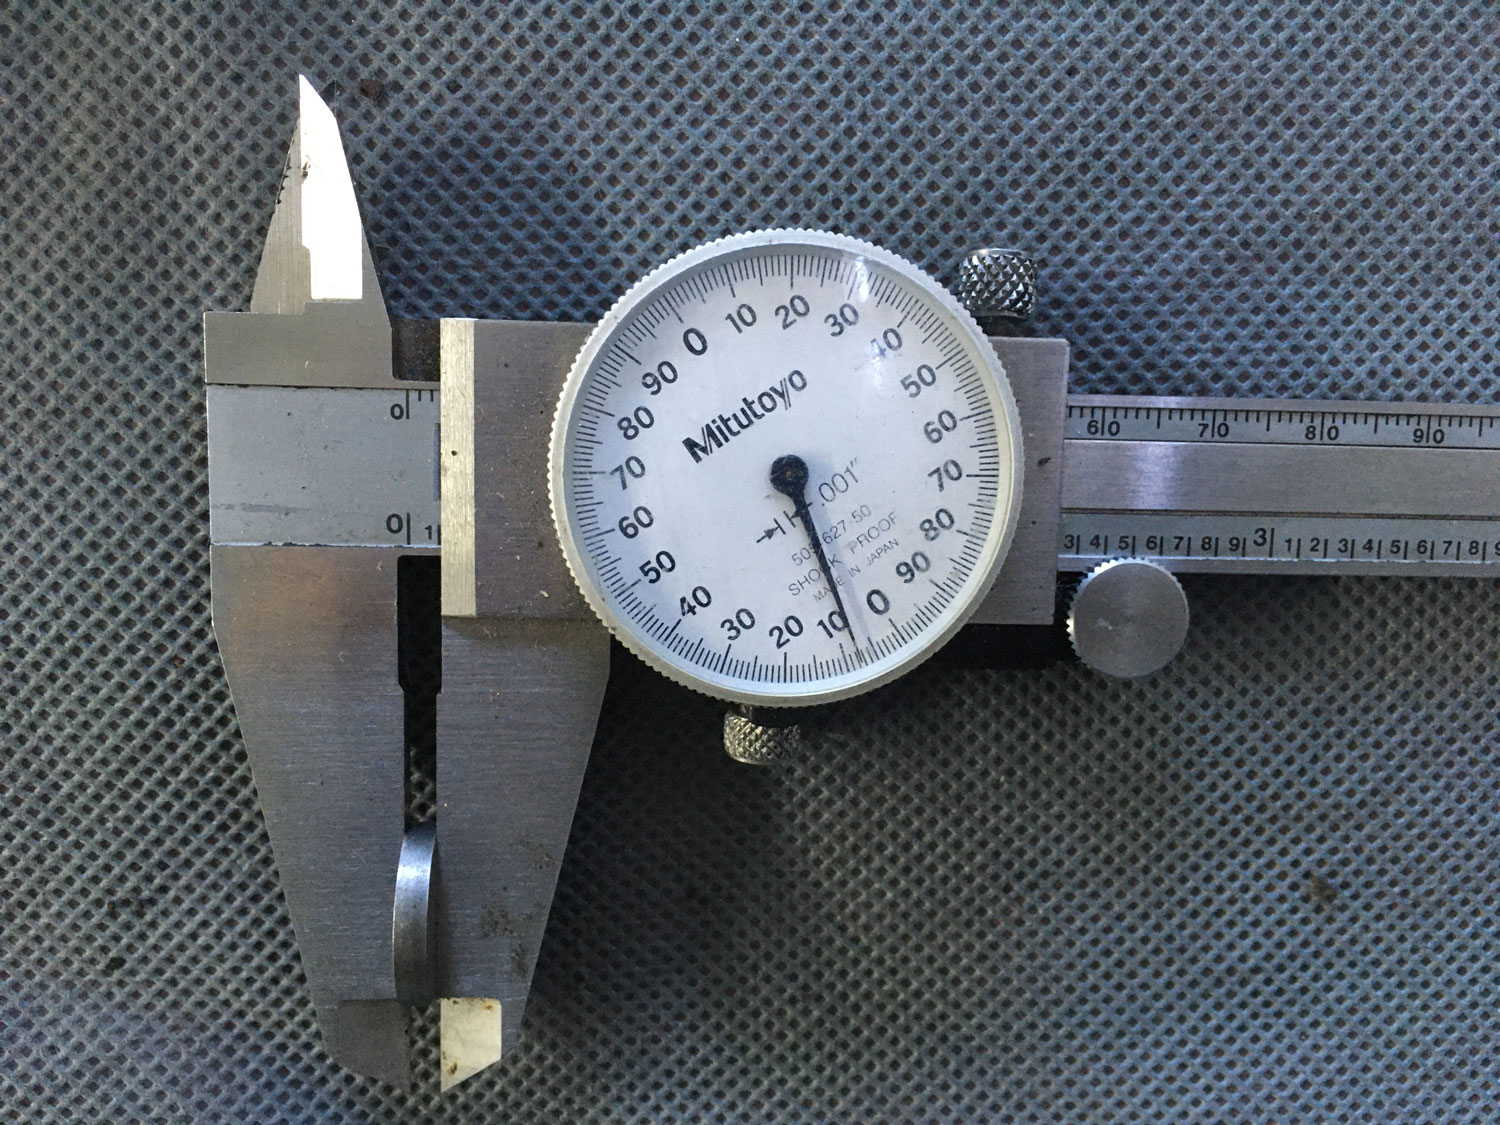 The calipers measure the thickness across the entire shim, and the dial really can only be read to the thousandth of an inch.